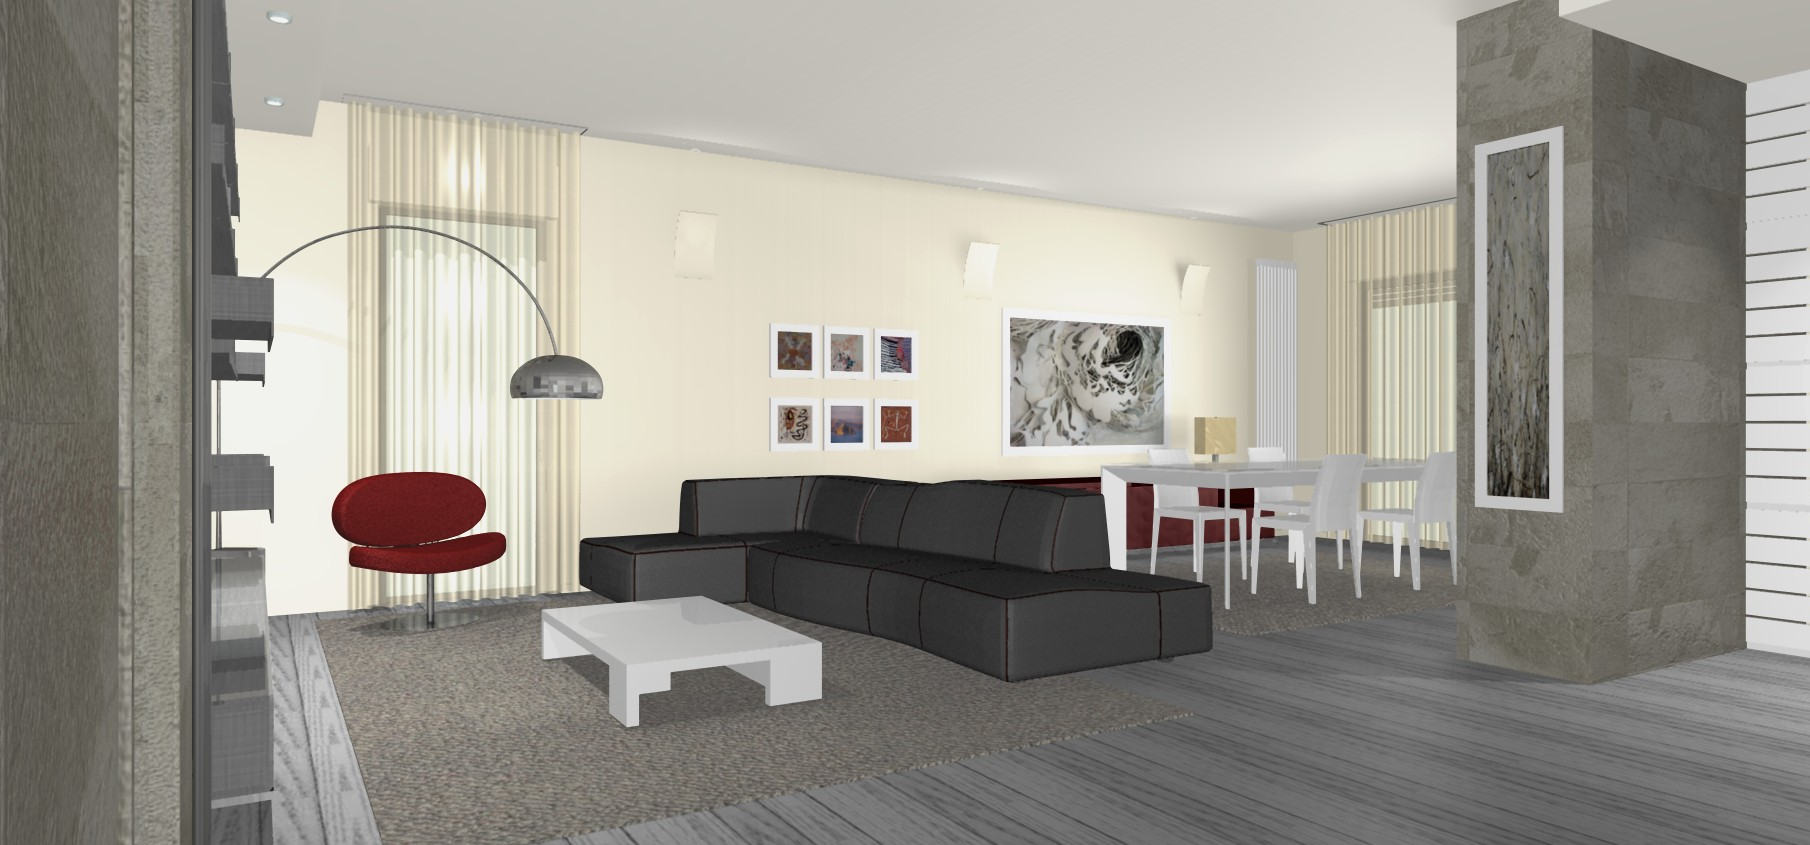 Design e modernit a roma architetto facile for Foto di design moderno